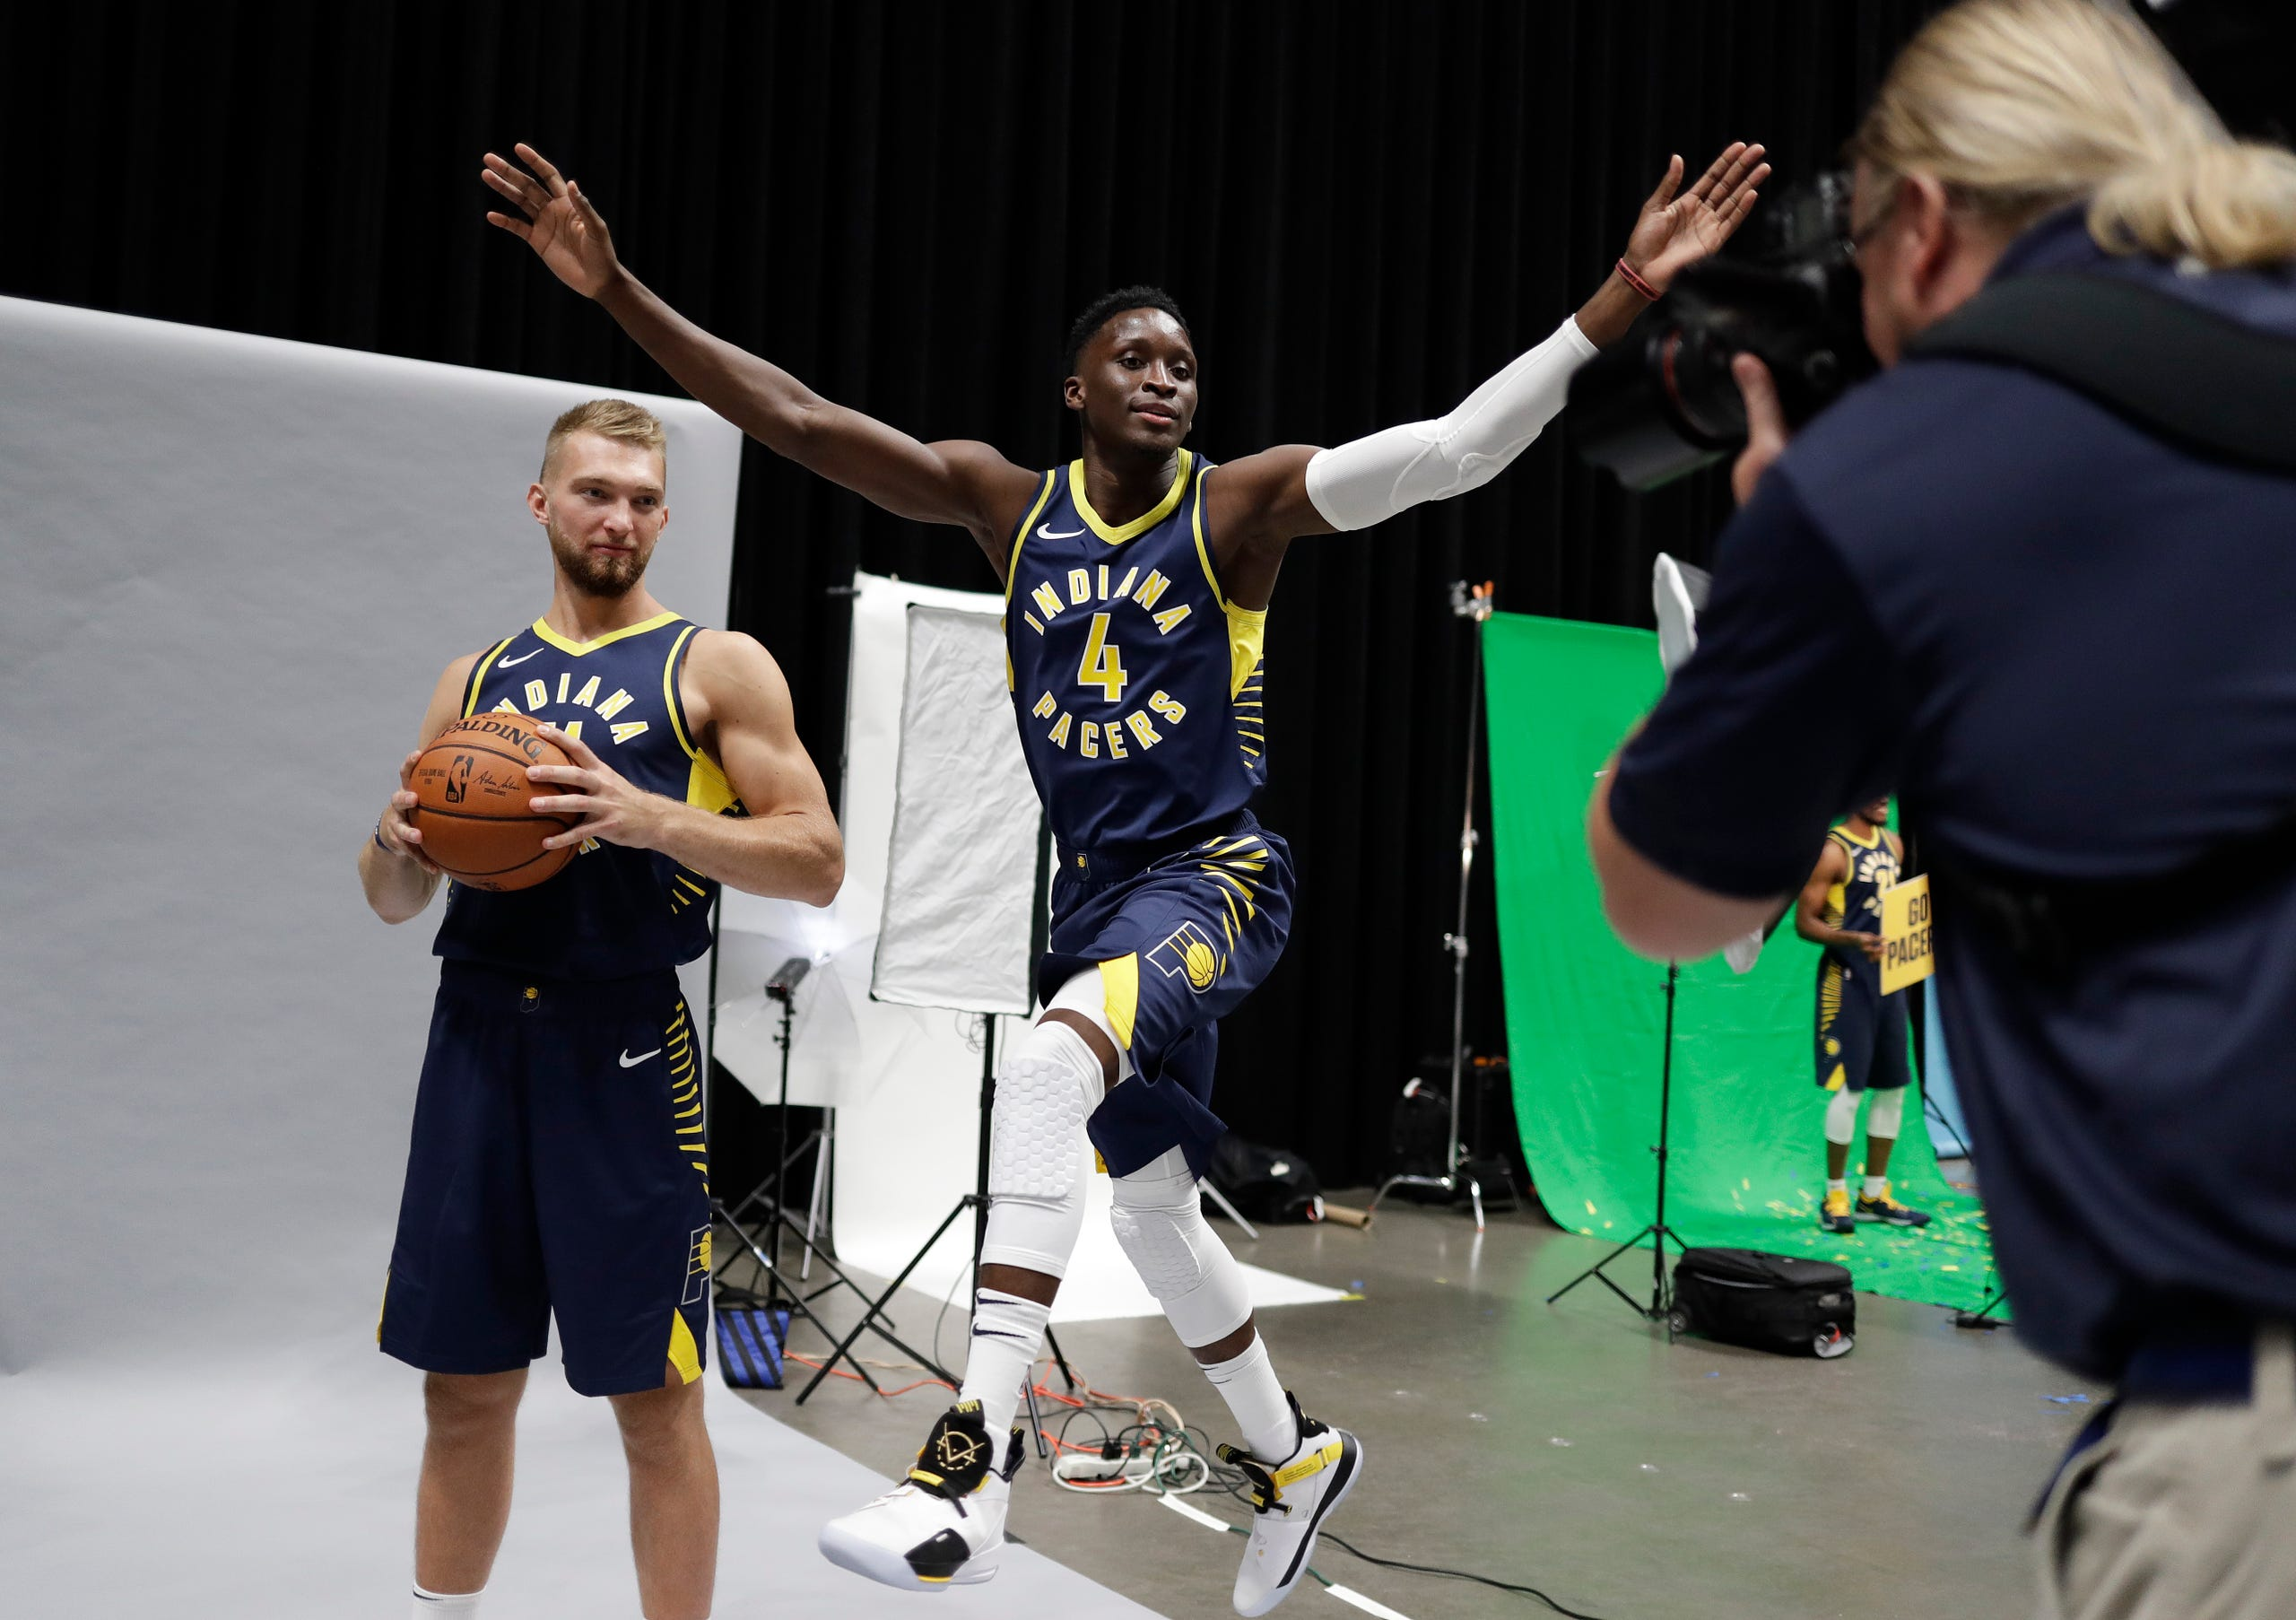 cfed9f8d4c3 Scenes from NBA Media Day 2018